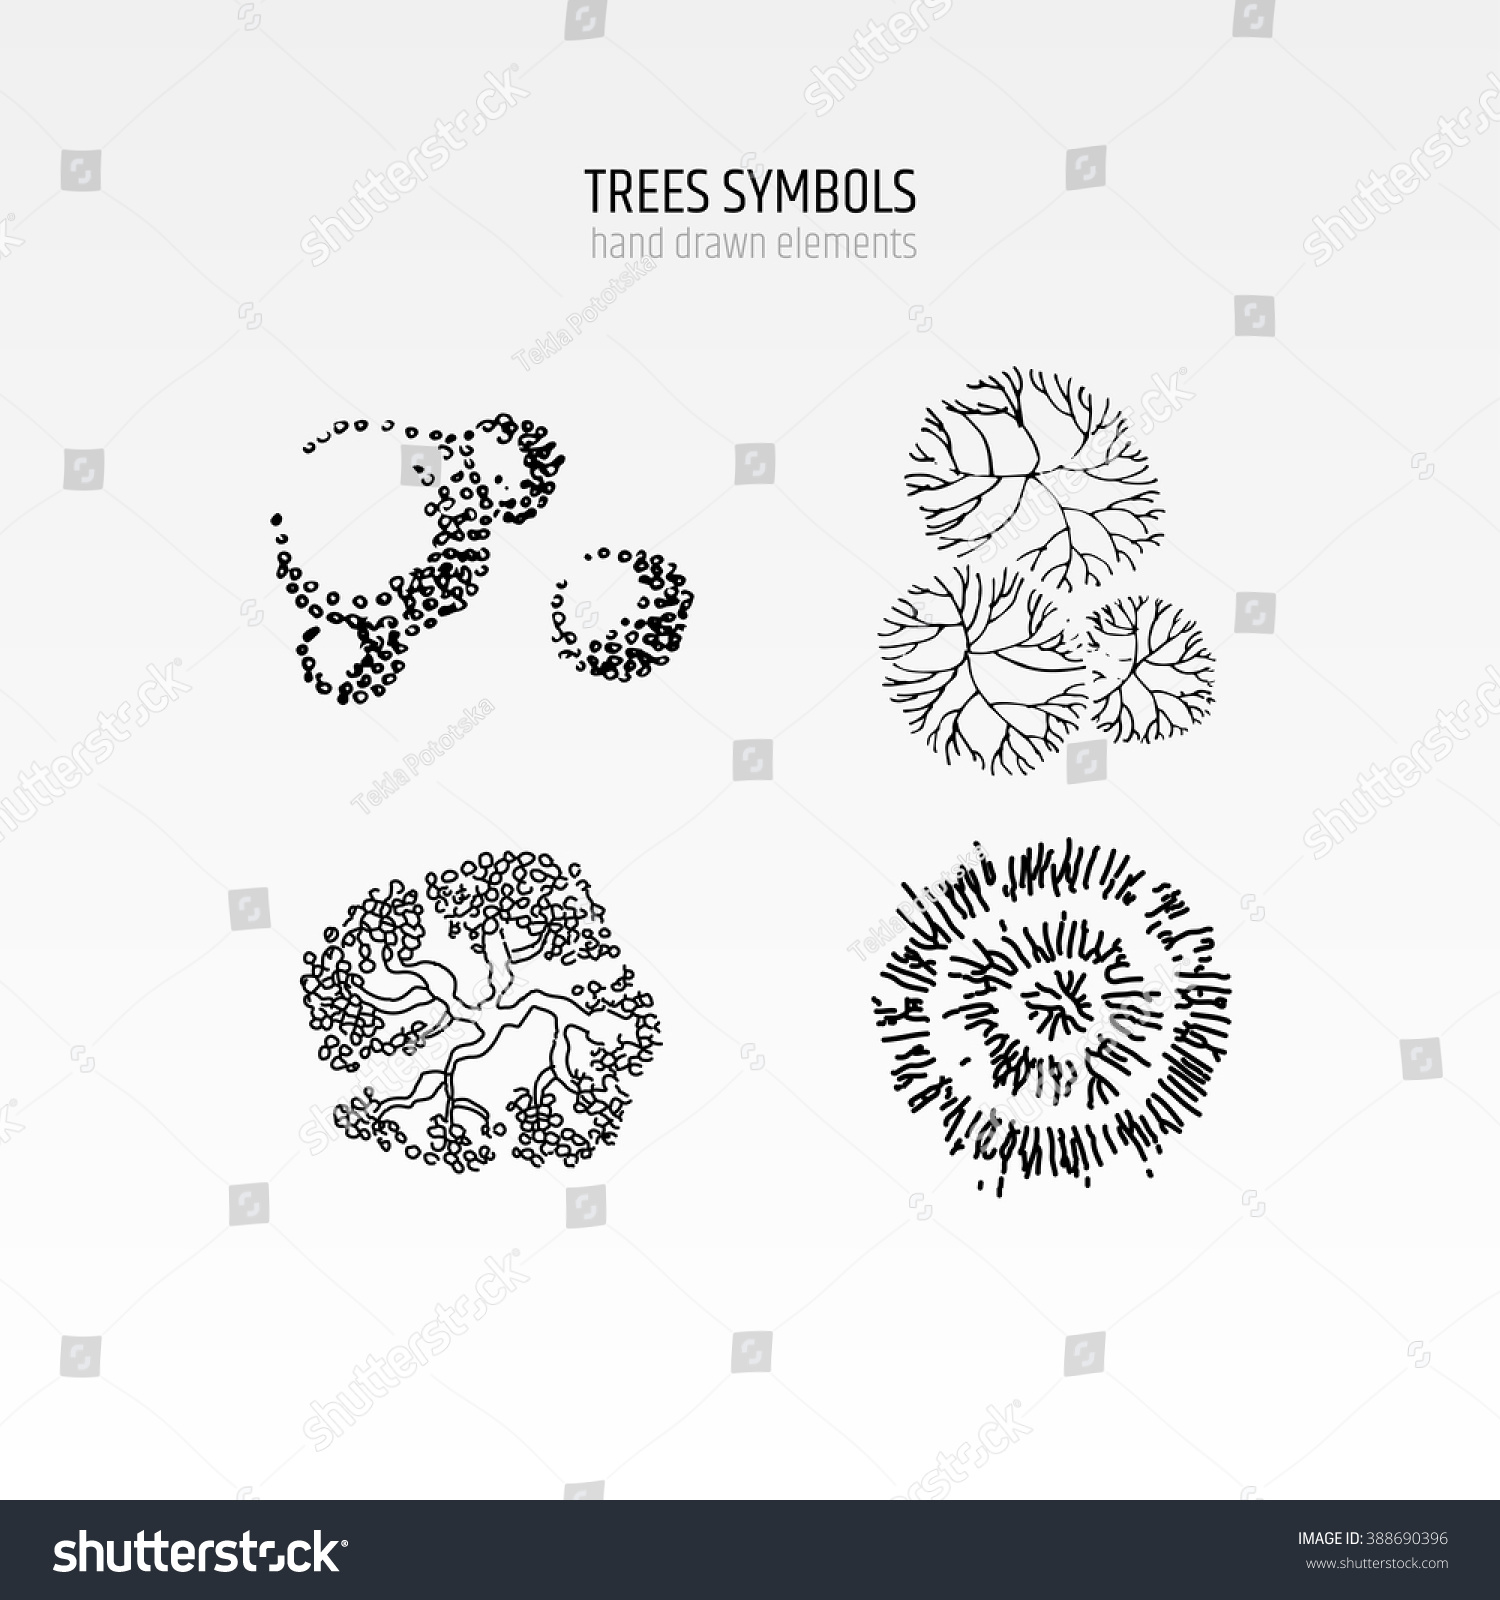 Architecture Drawing Symbols architecture drawing landscape design elements different stock